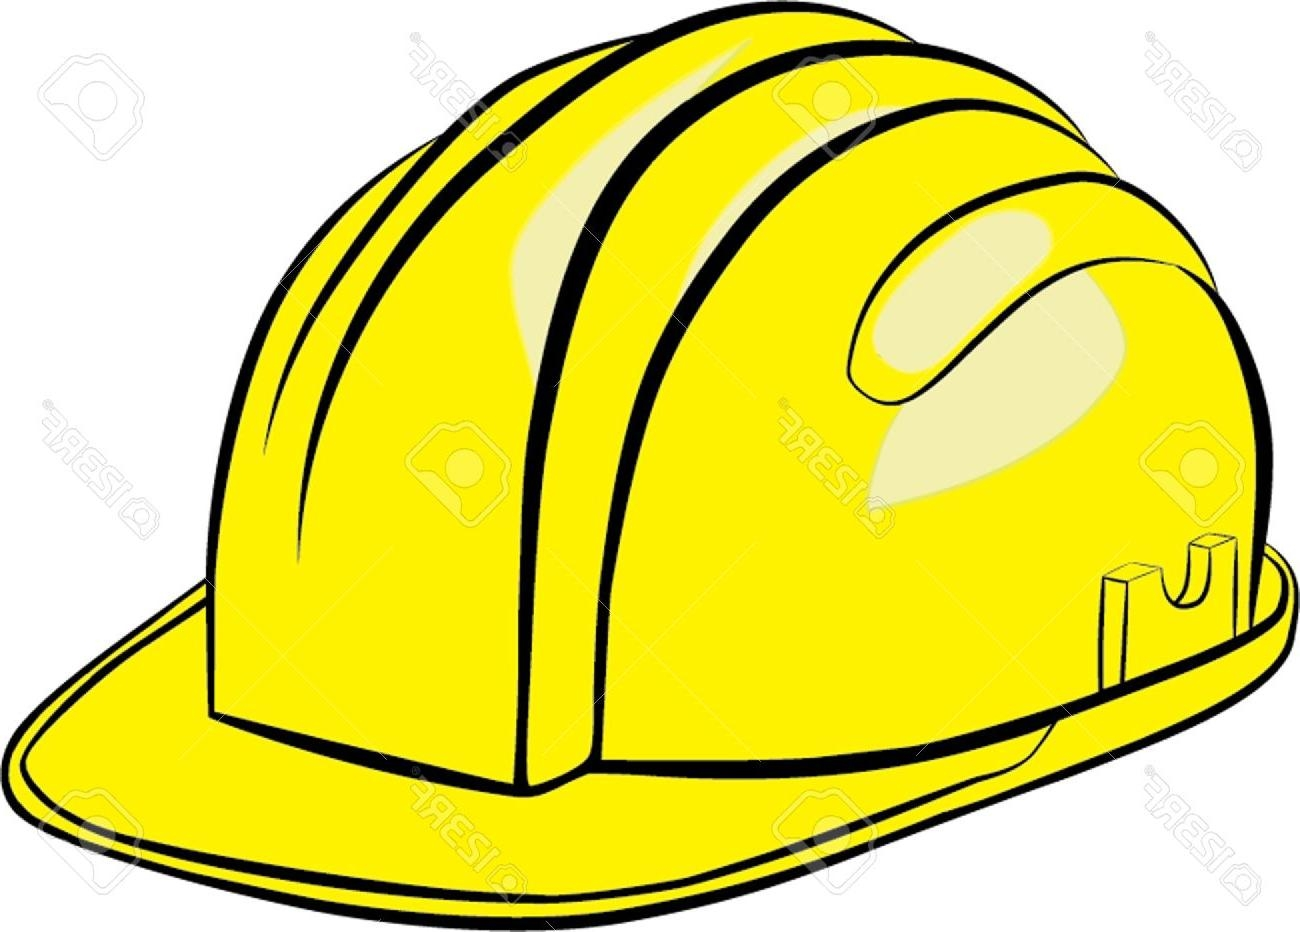 construction hat clipart at getdrawings com free for personal use rh getdrawings com